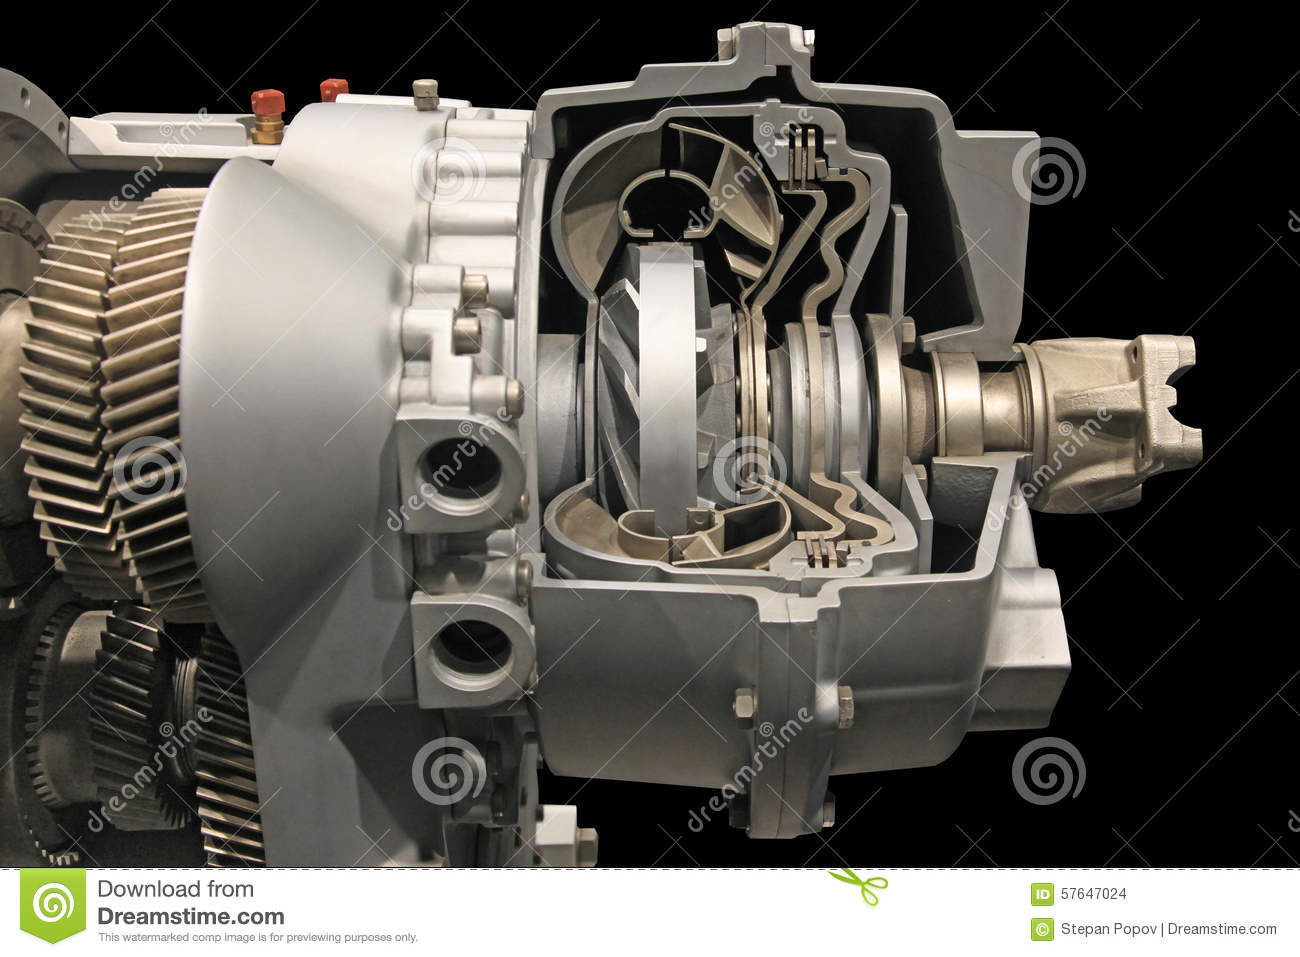 Auto clutch car stock photo  Image of industry, mechanical - 57647024